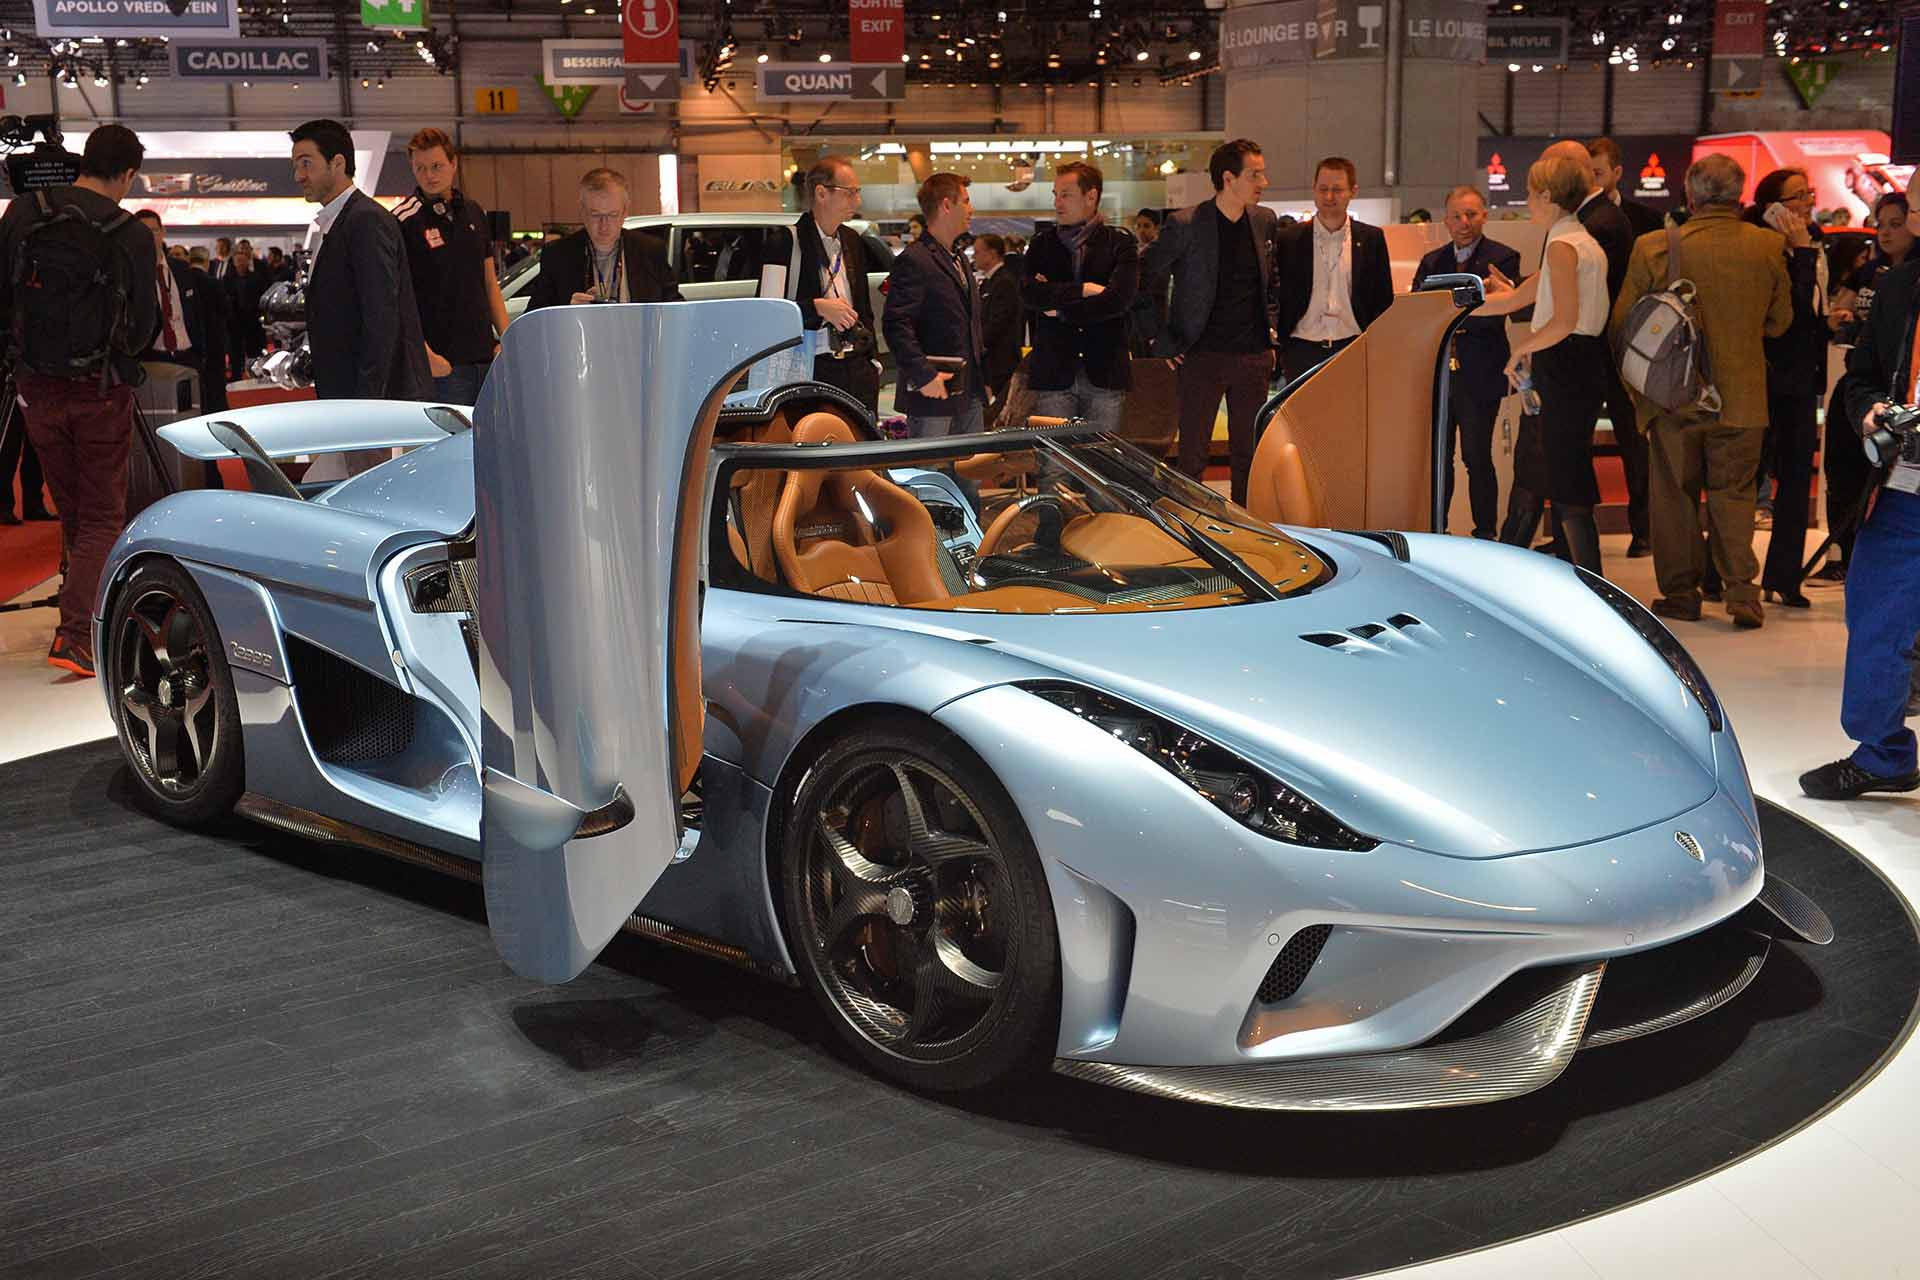 The Koenigsegg Regera: a technological marvel combining an electric motor and a mind-blowing internal combustion engine, with a single speed gearbox.